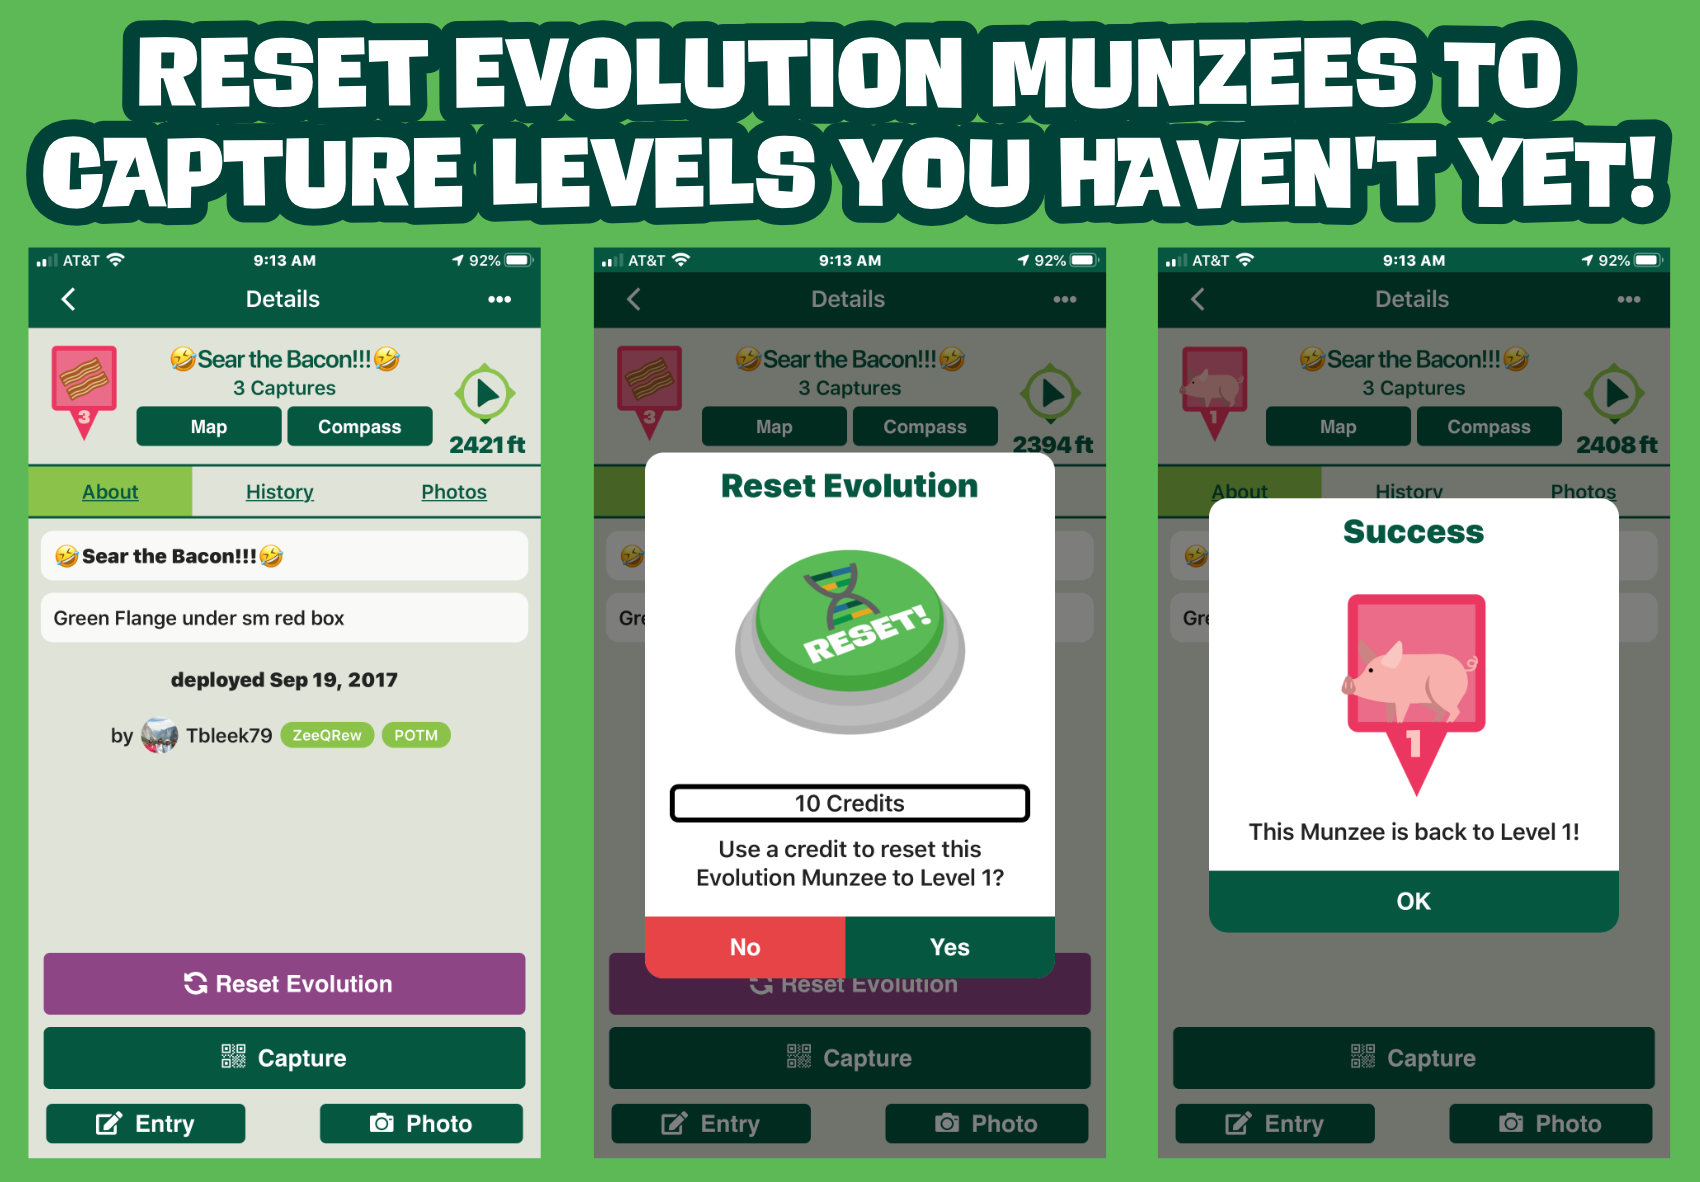 Reset Evolution Munzee